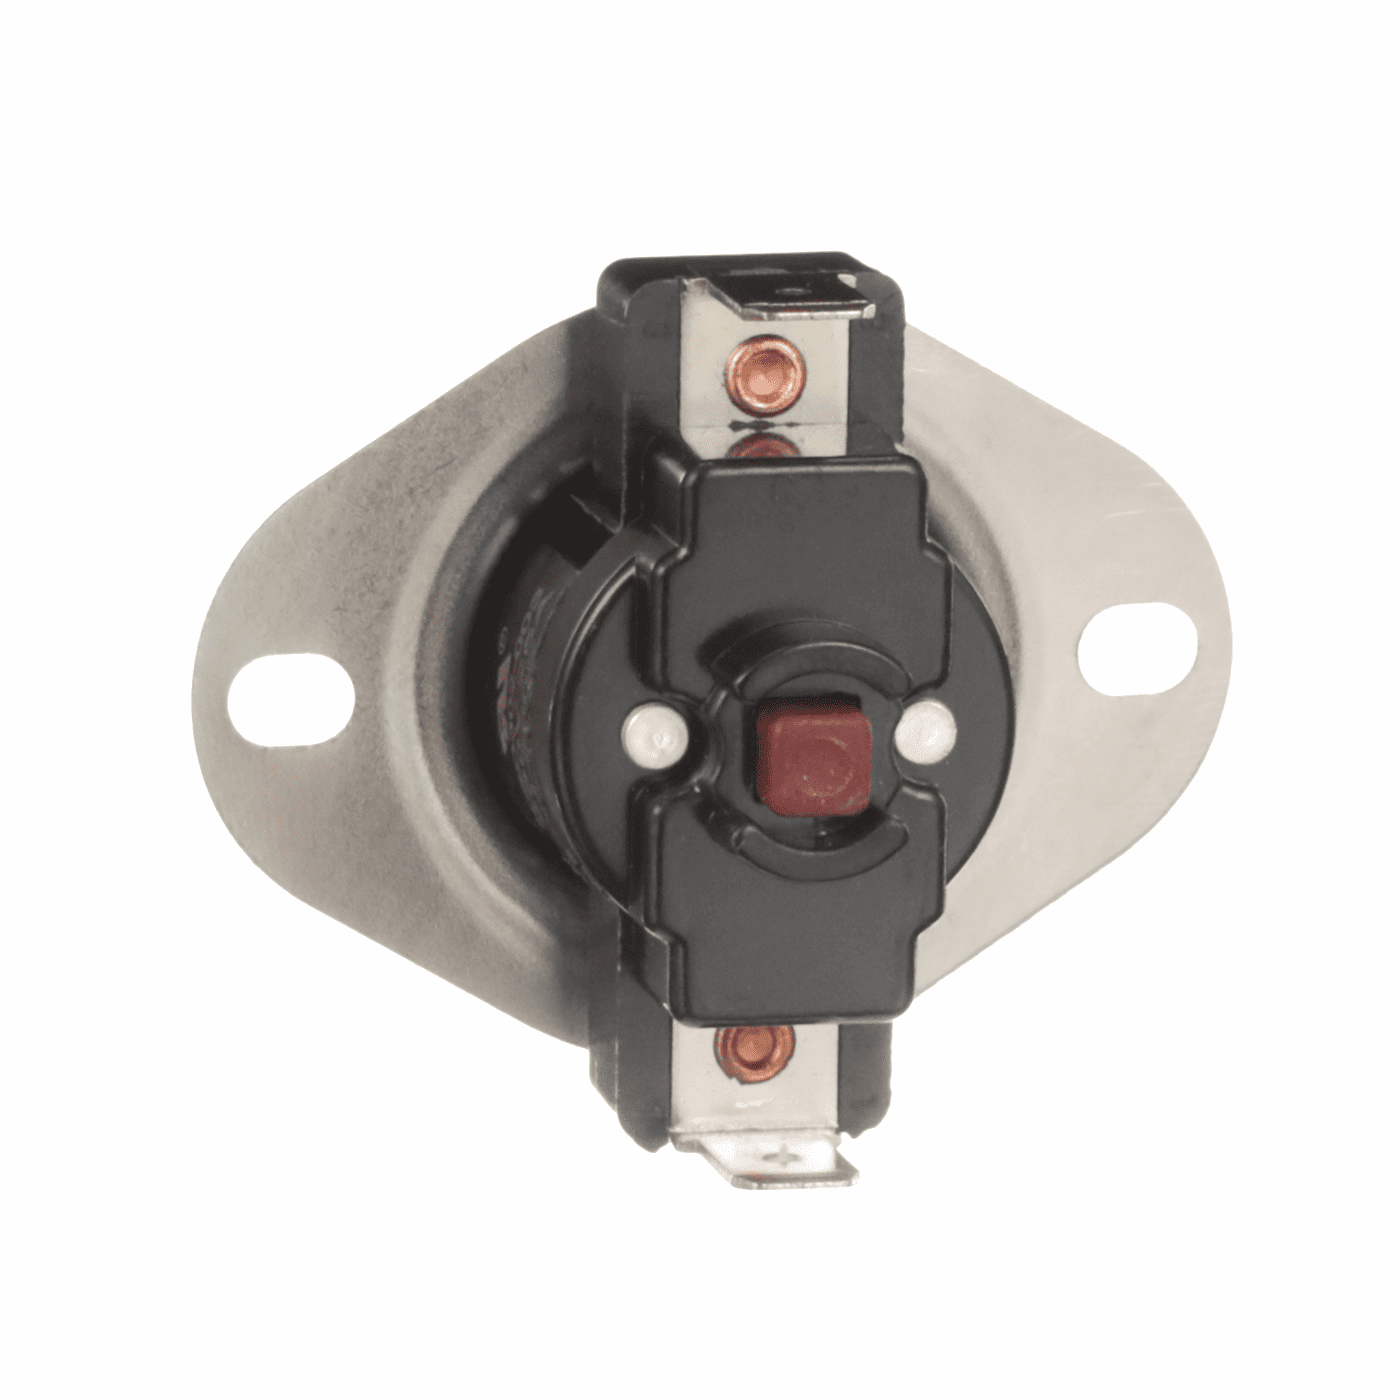 80601 | USSC 200F High Temp Switch With Reset Button for the Bayfront 5660, #80601